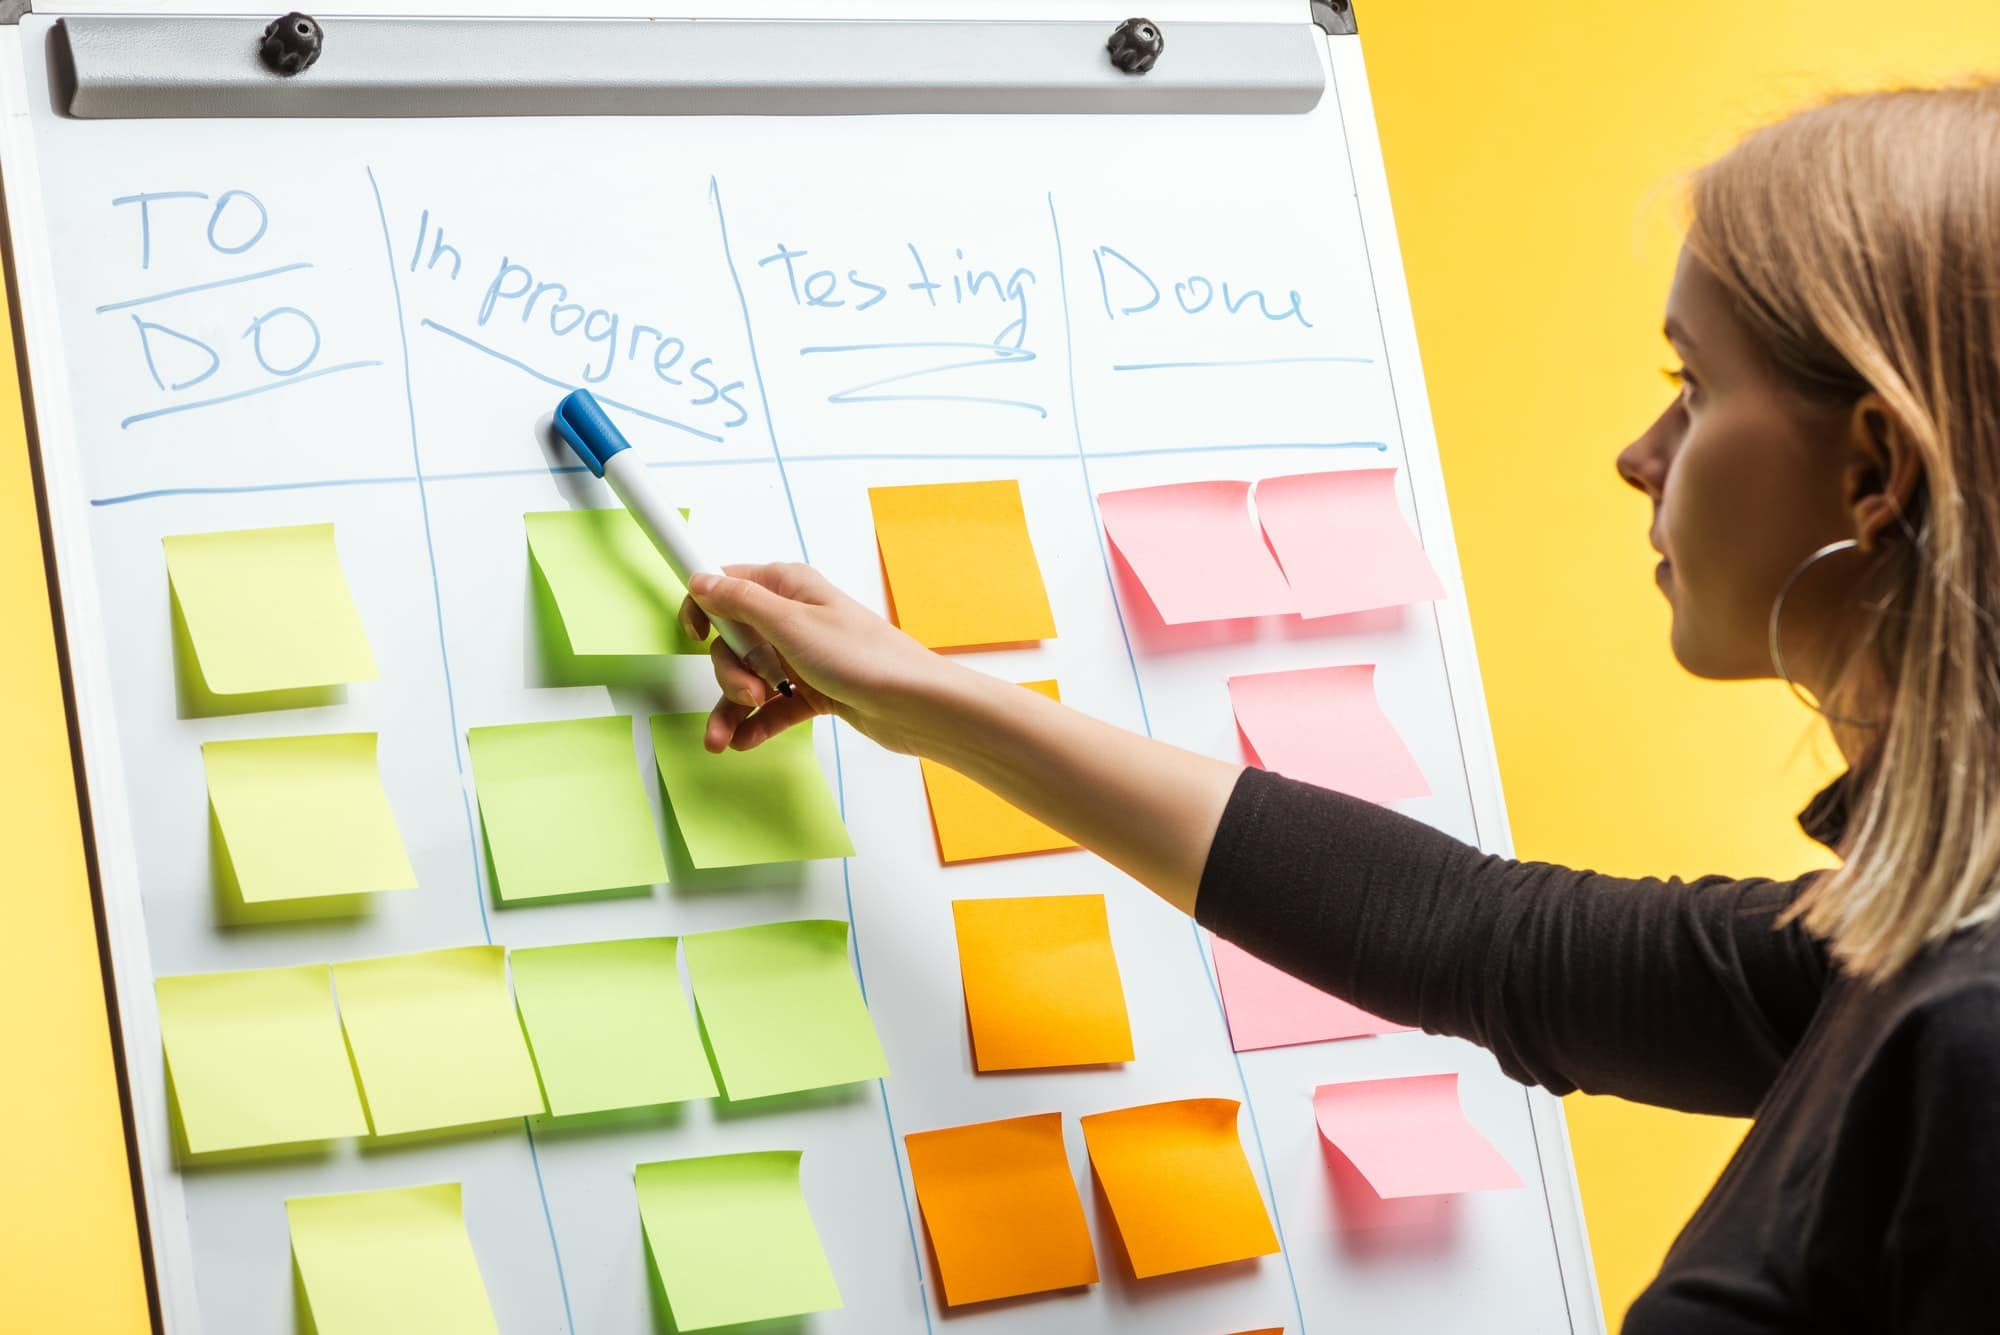 profile of businesswoman standing near white flipchart, pointing at words over sticky notes